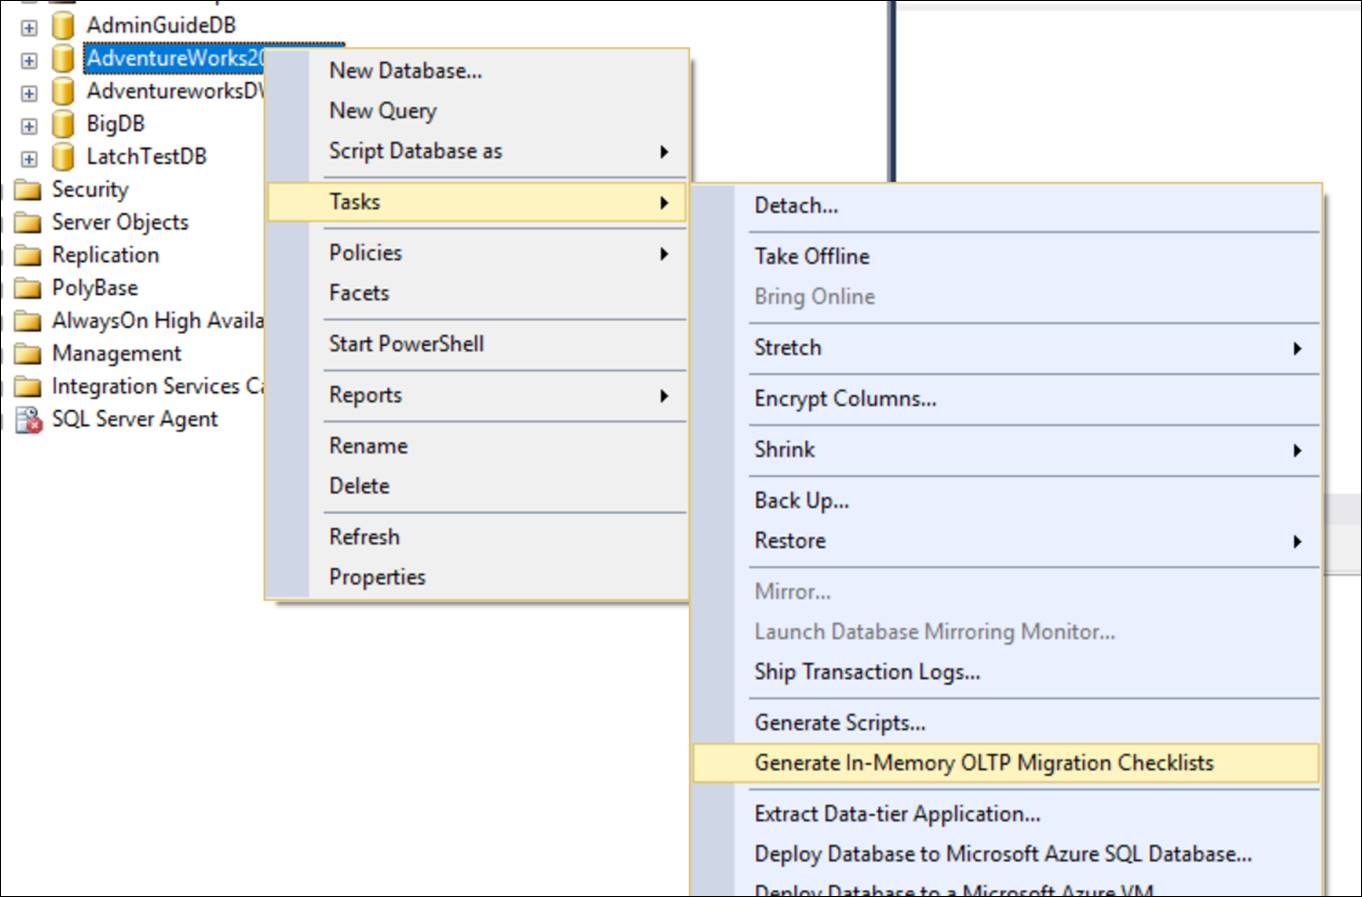 SQL Server Torque: How To Generate In-Memory OLTP Migration Checklist